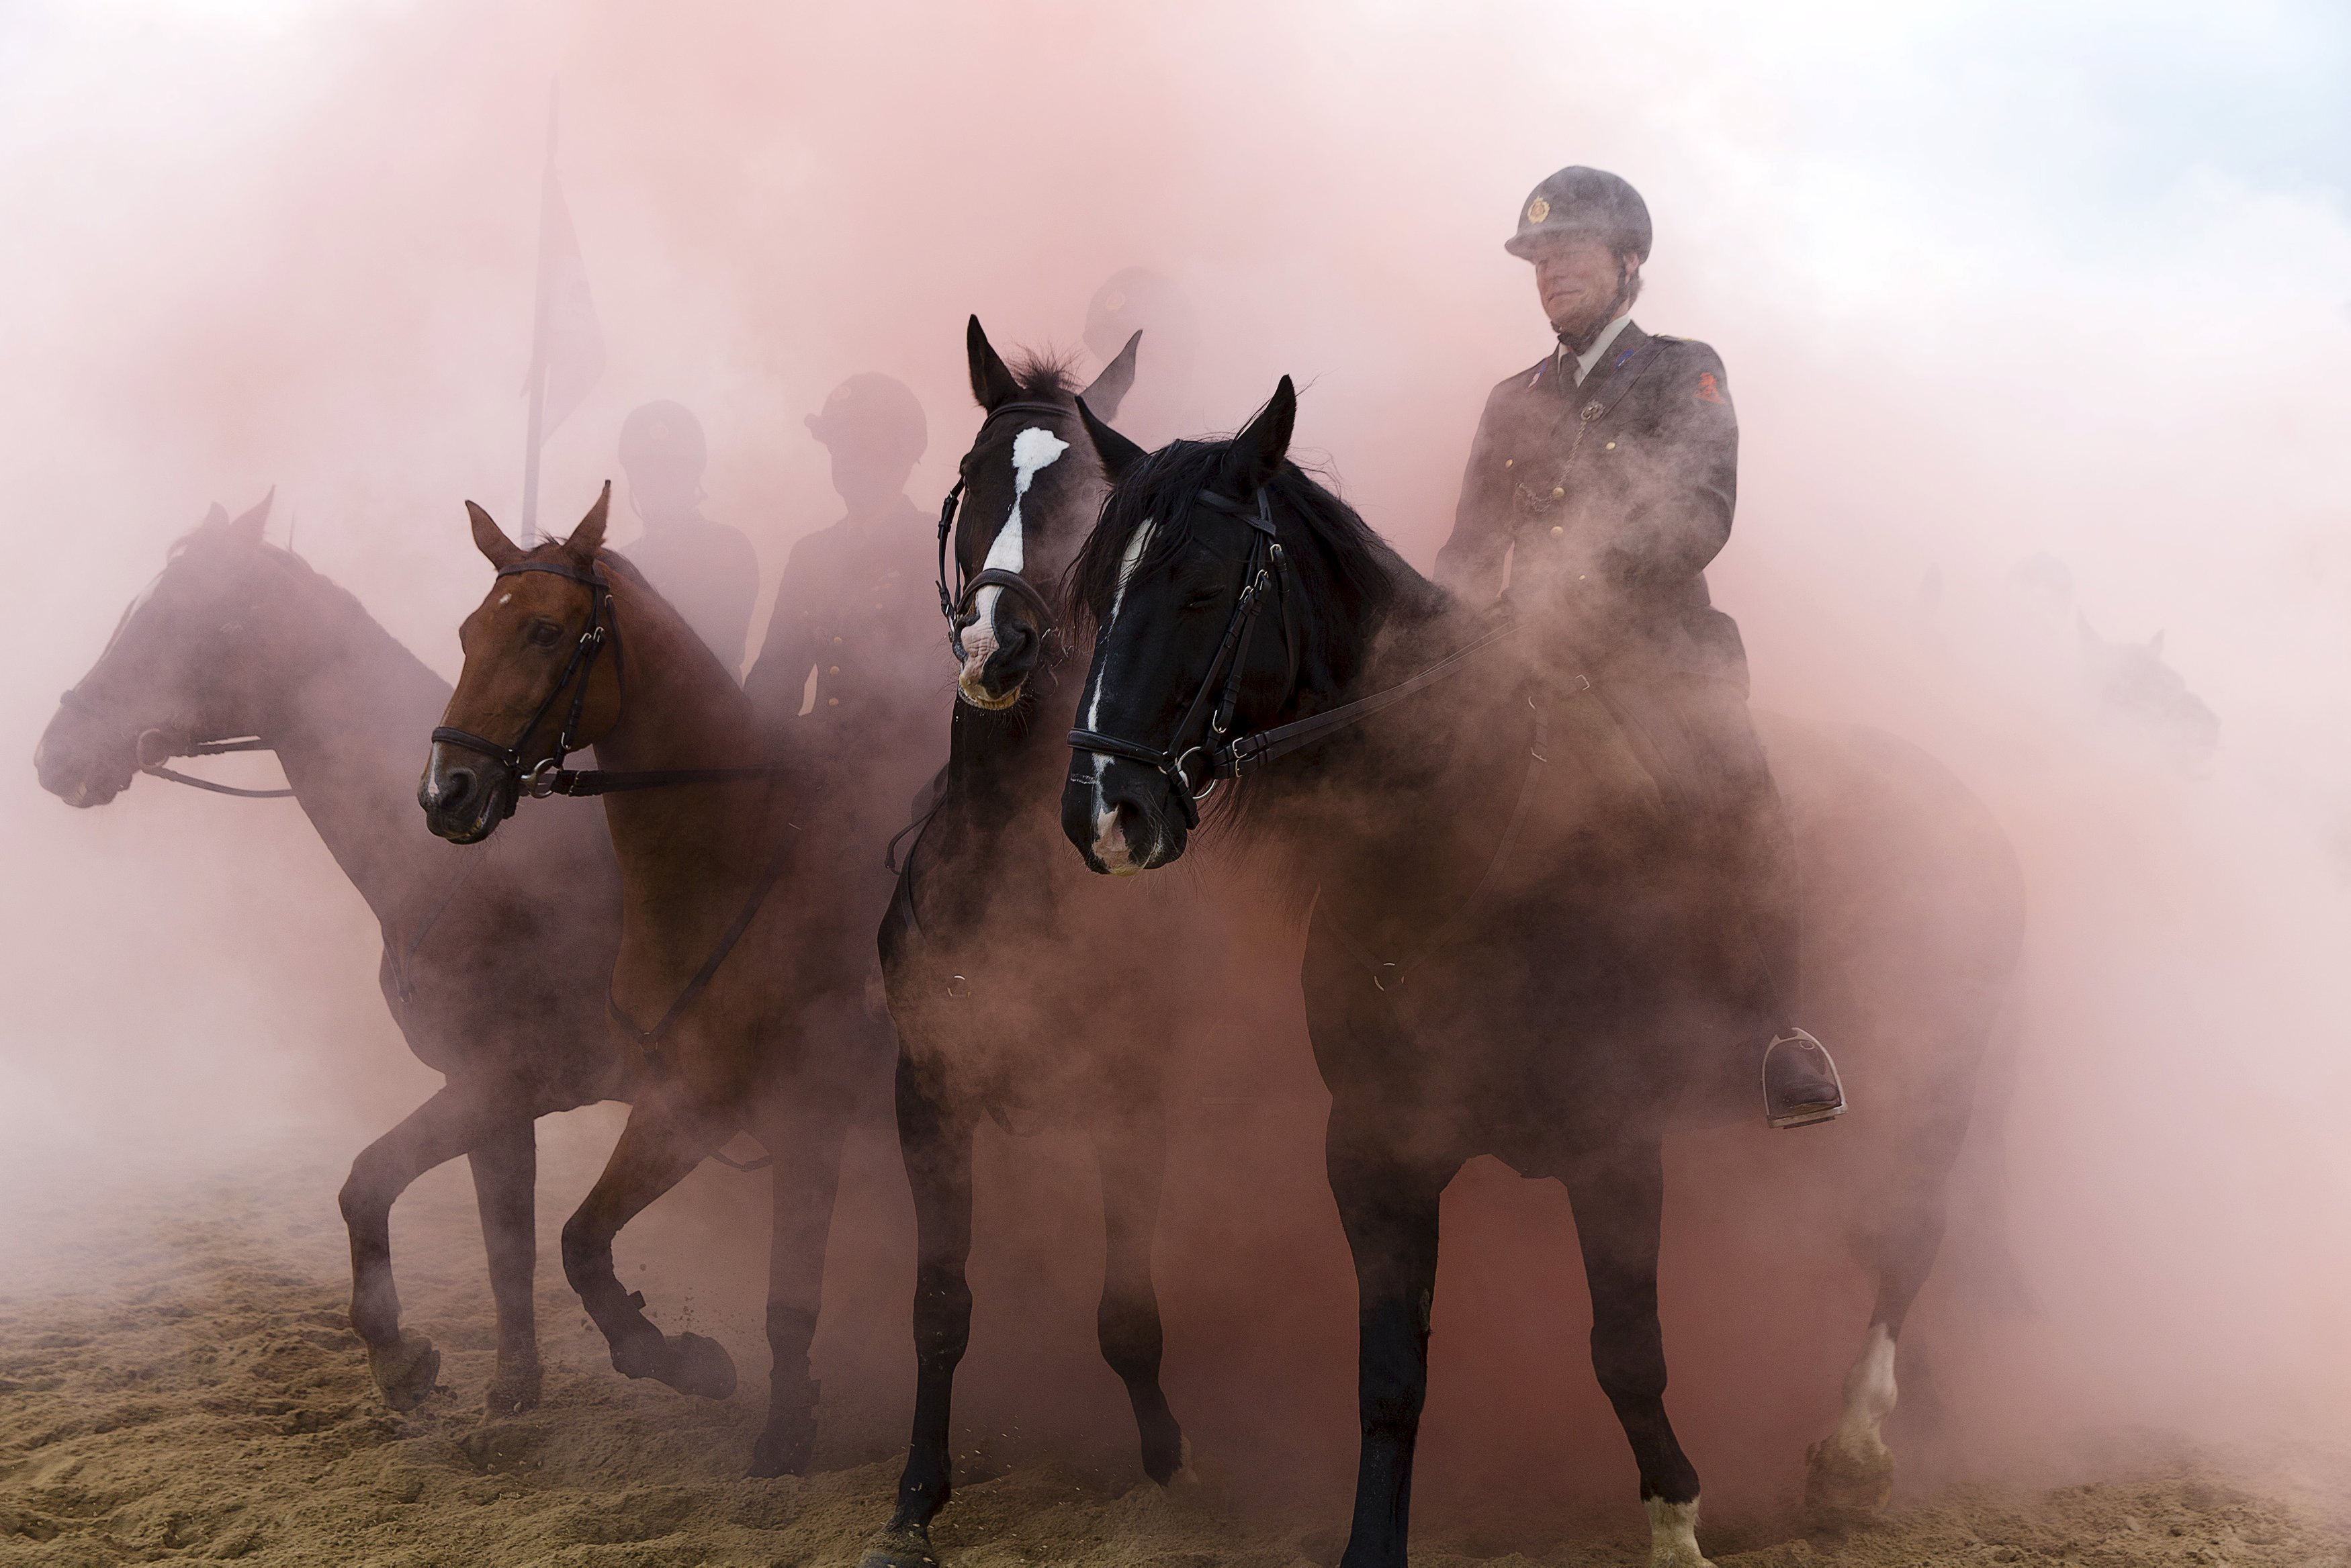 Members of the Dutch Royal Guard guide their horses through clouds of thick smoke and gunfire on the beach of Scheveningen, near The Hague to prepare for the presentation of the Dutch 2016 Budget Memorandum